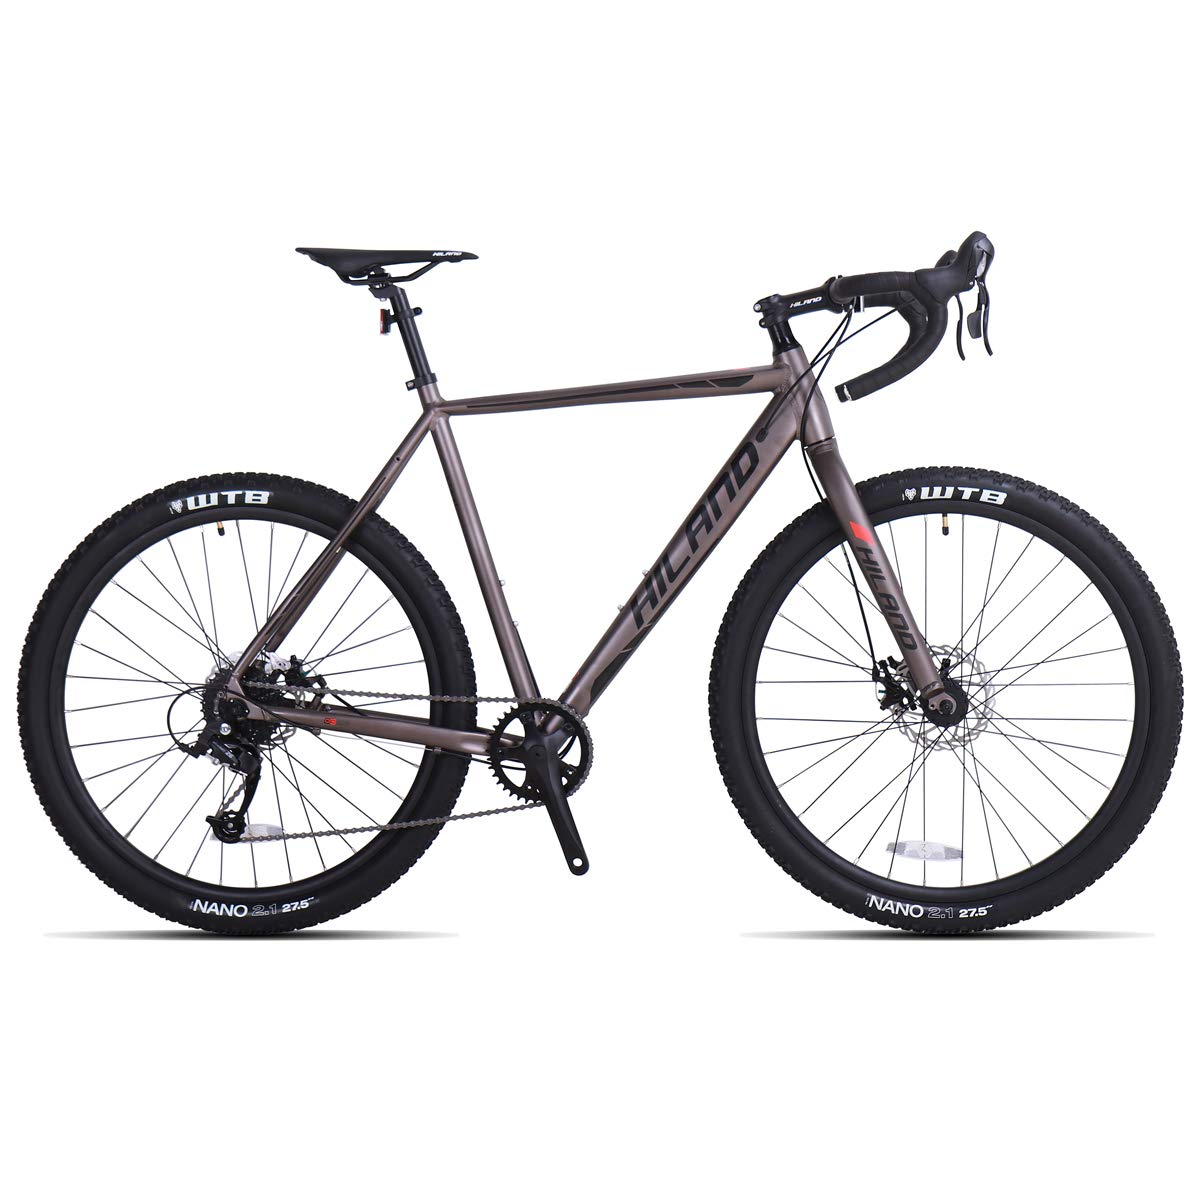 Hiland Gravel Bike for Men and Women Road Cyclocross Adult Teenager Youth Boys Girls Sport Bicycle, 650B Wheels 24 speeds Bikes Black Grey 58cm by HH HILAND